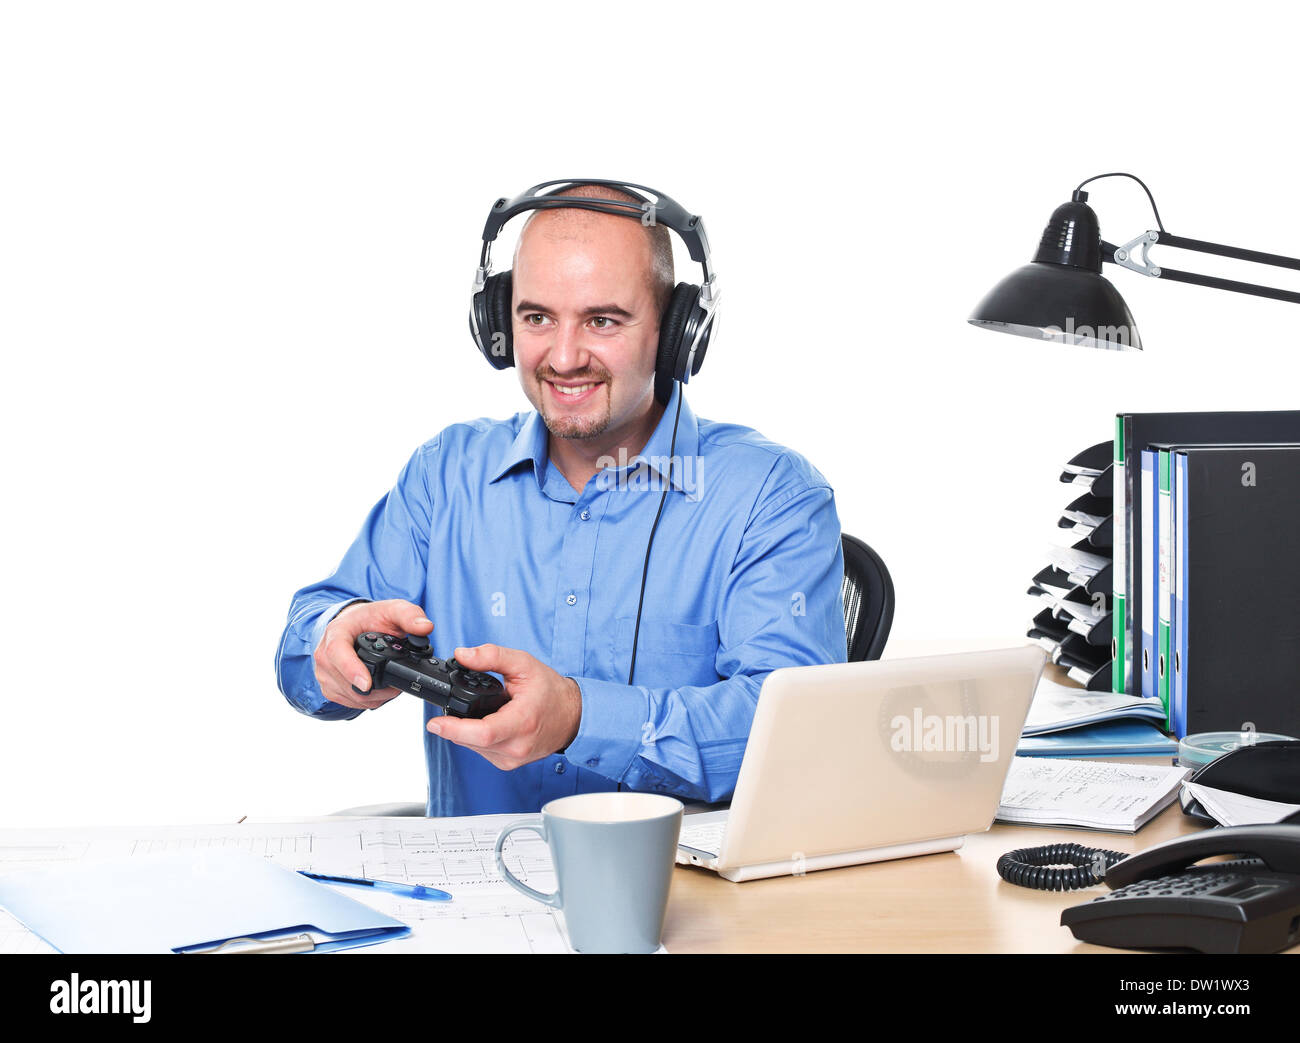 play at every time - Stock Image